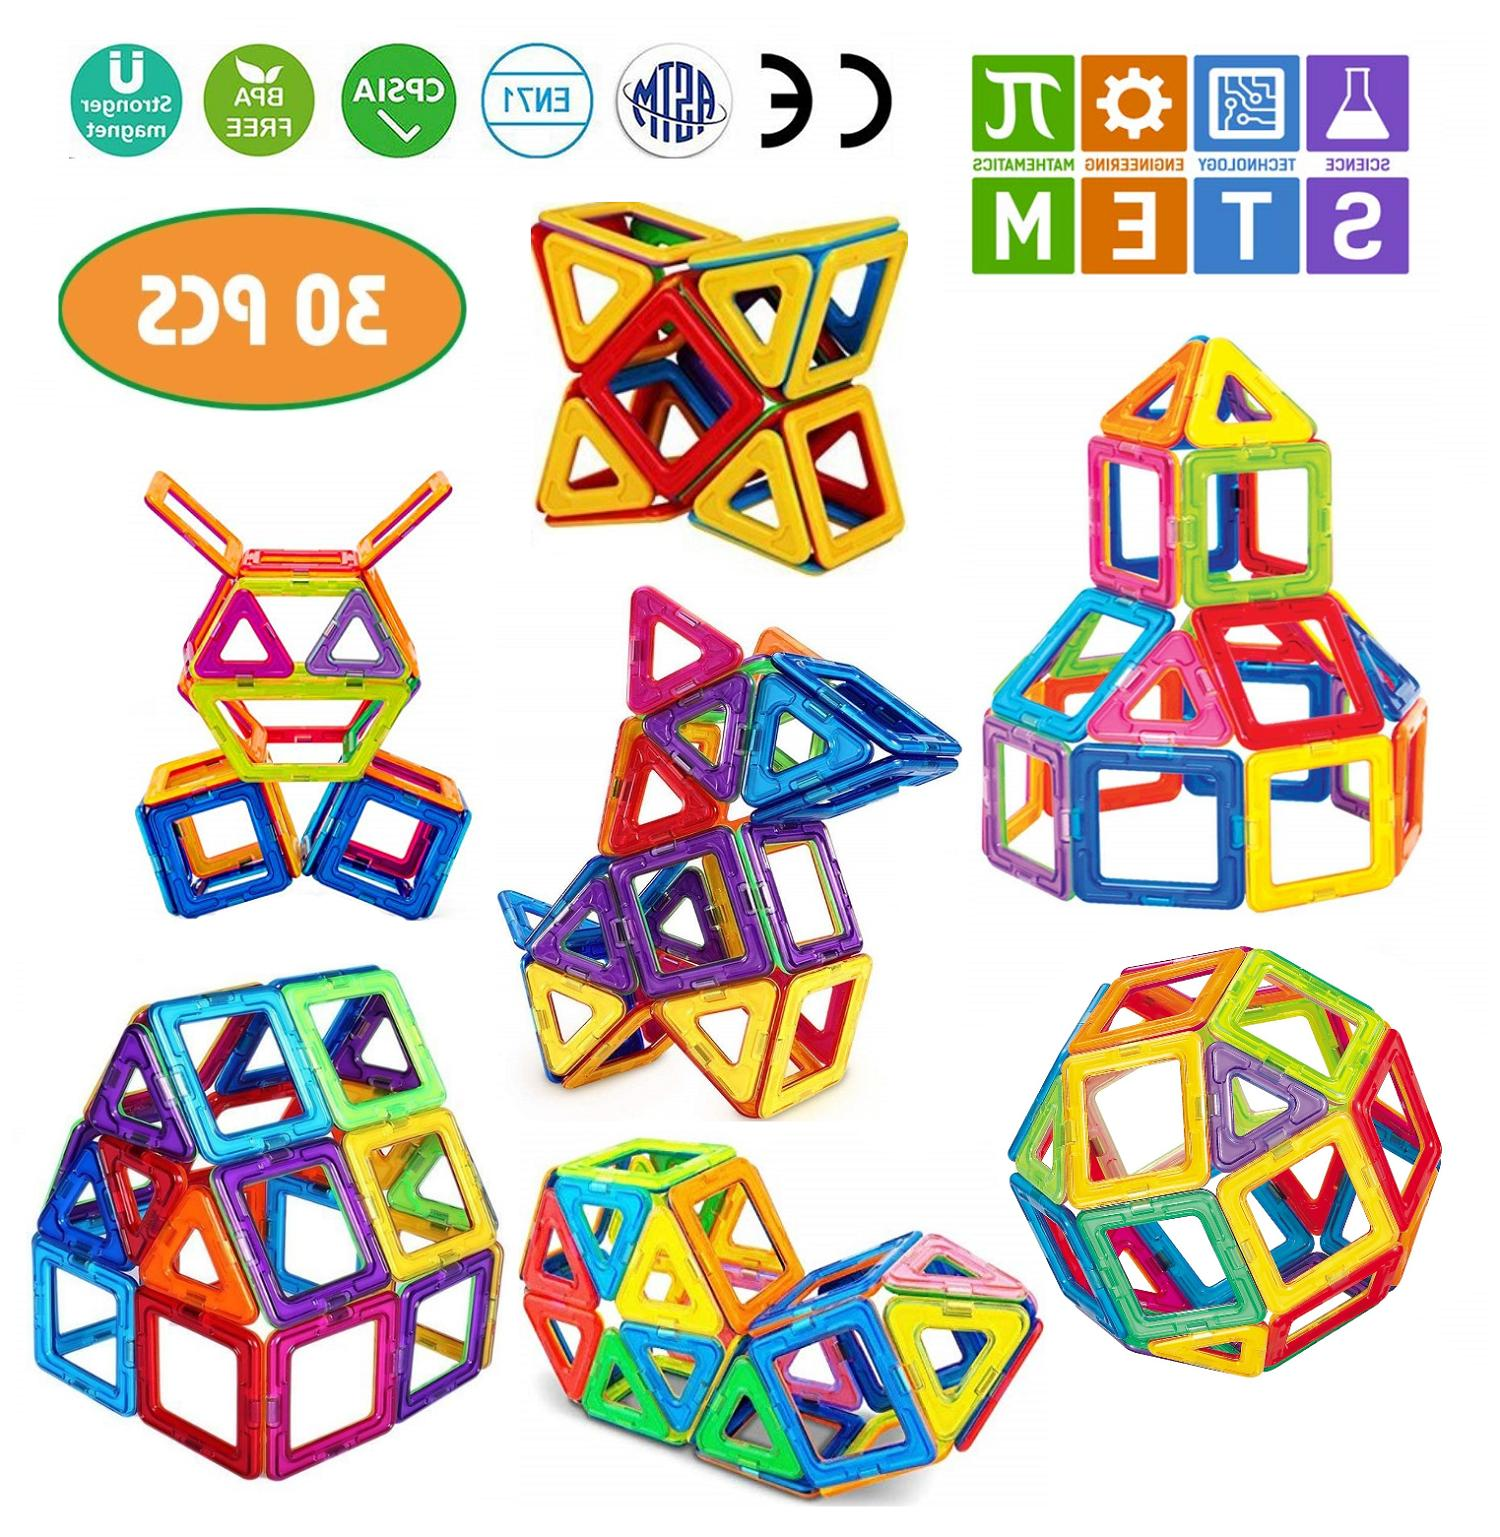 kids creative learning educational toys for age